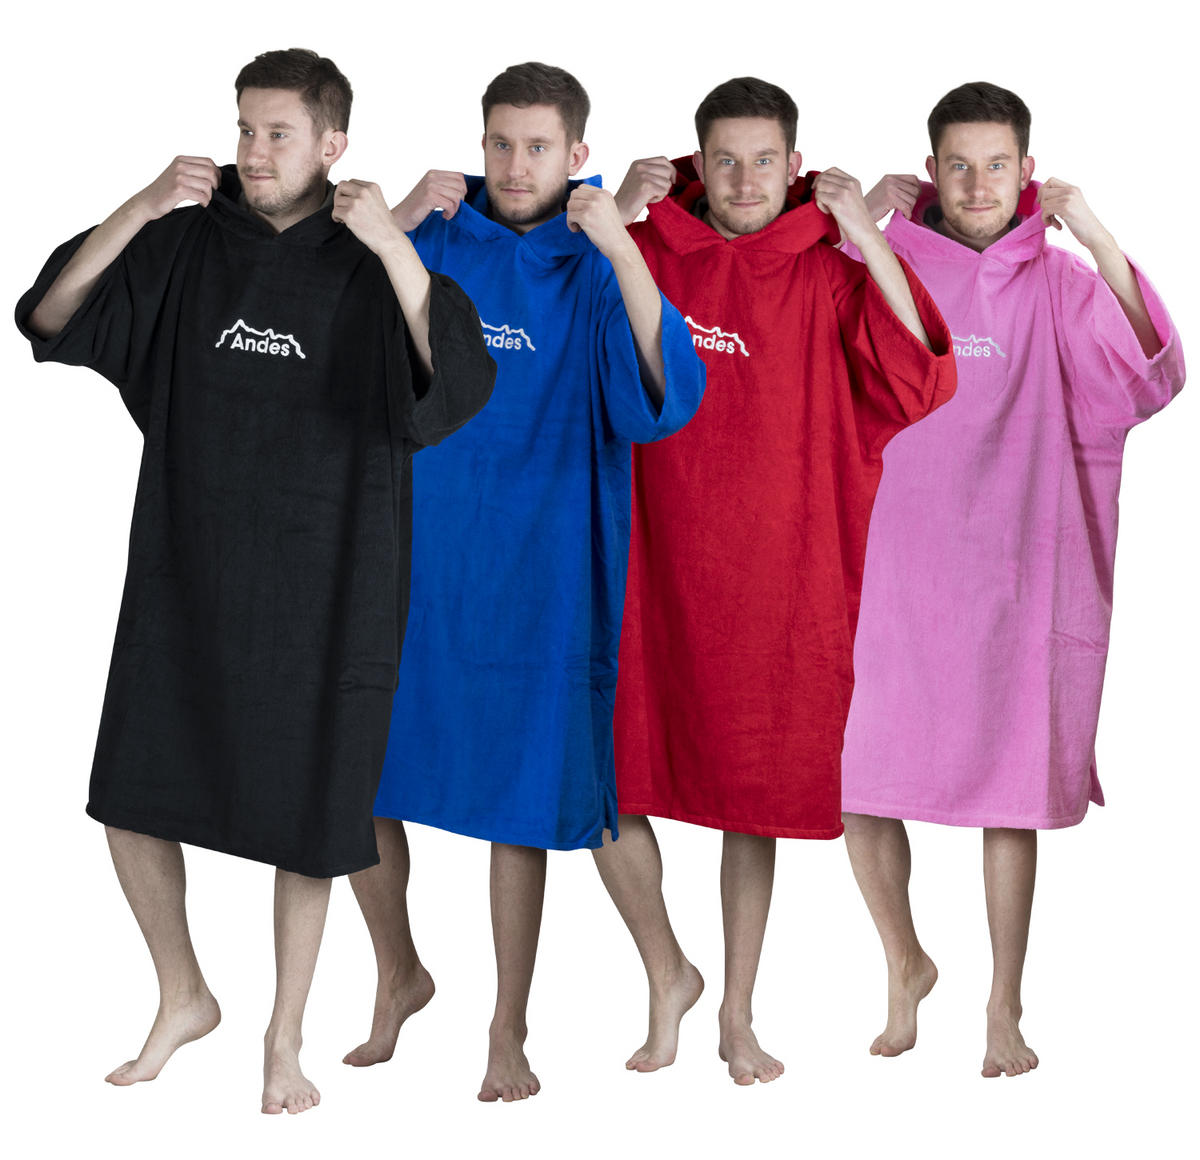 Andes Beach Towel Robe